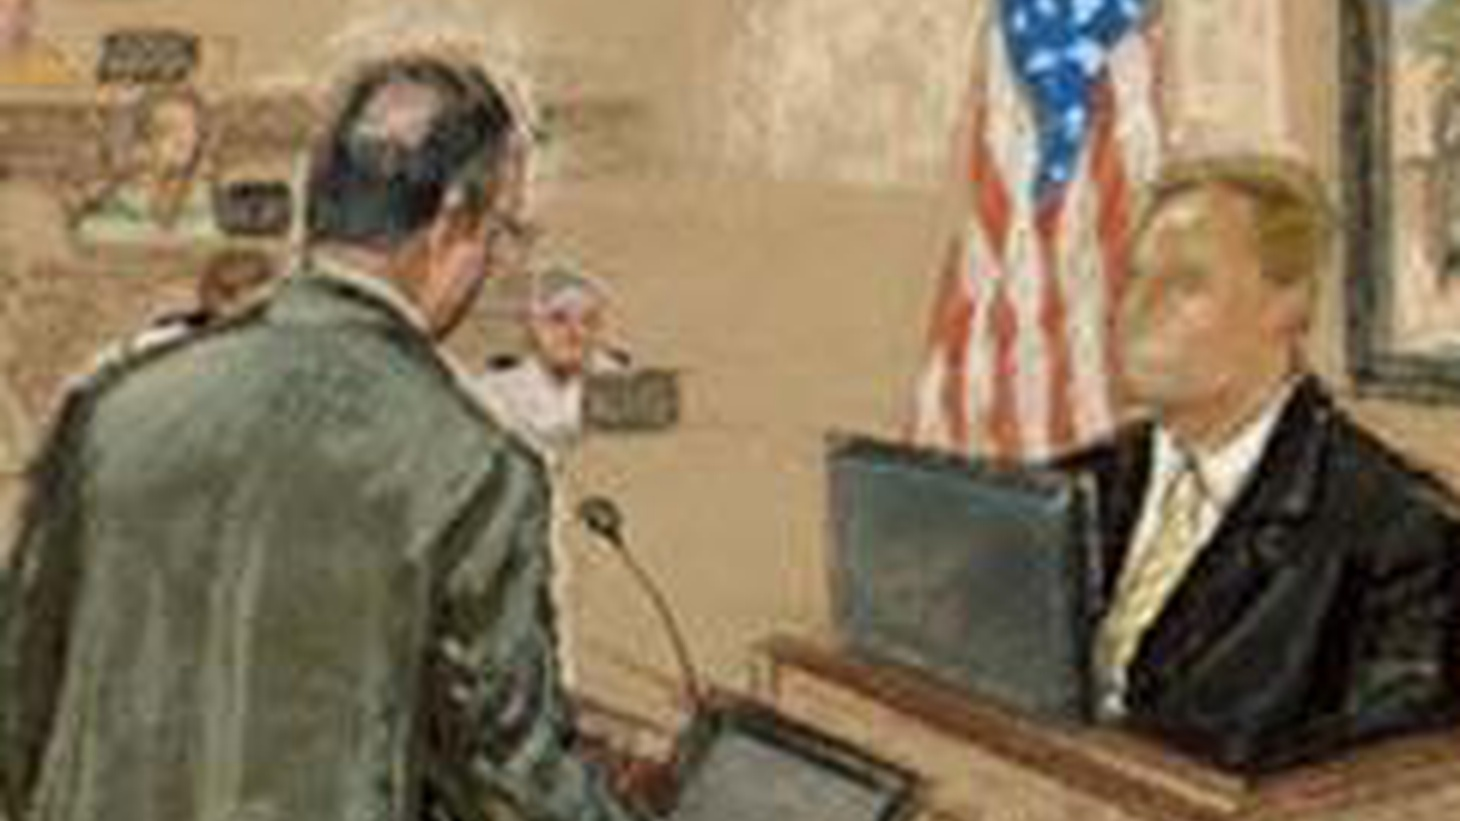 """In a test case for military tribunals, Osama bin Laden's former driver was convicted today on one charge but acquitted on another. The White House calls it a """"fair trial,"""" but appeals are likely. Also, FBI prepares to unveil its case against Bruce Ivins, and presidential politics and popular culture."""